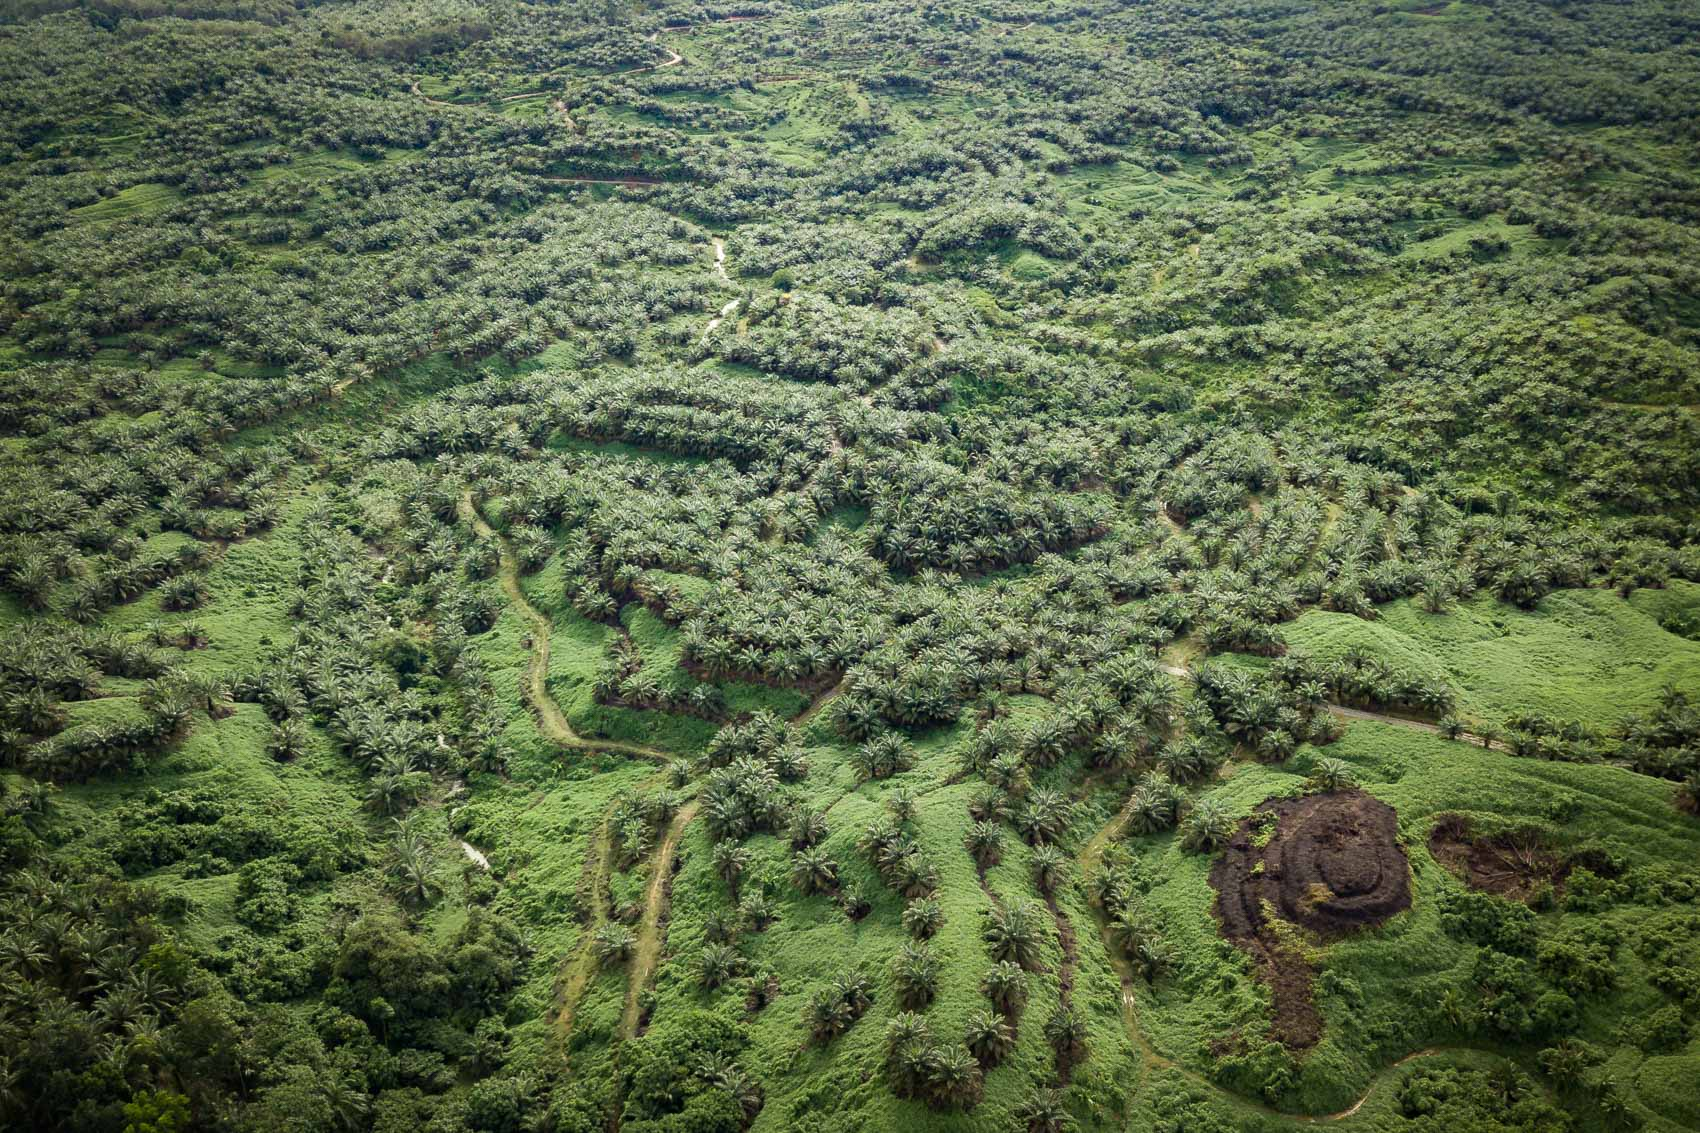 An aerial view of a palm oil plantation in Northern Sumatra, Indonesia © David Coulson conservation photojournalist